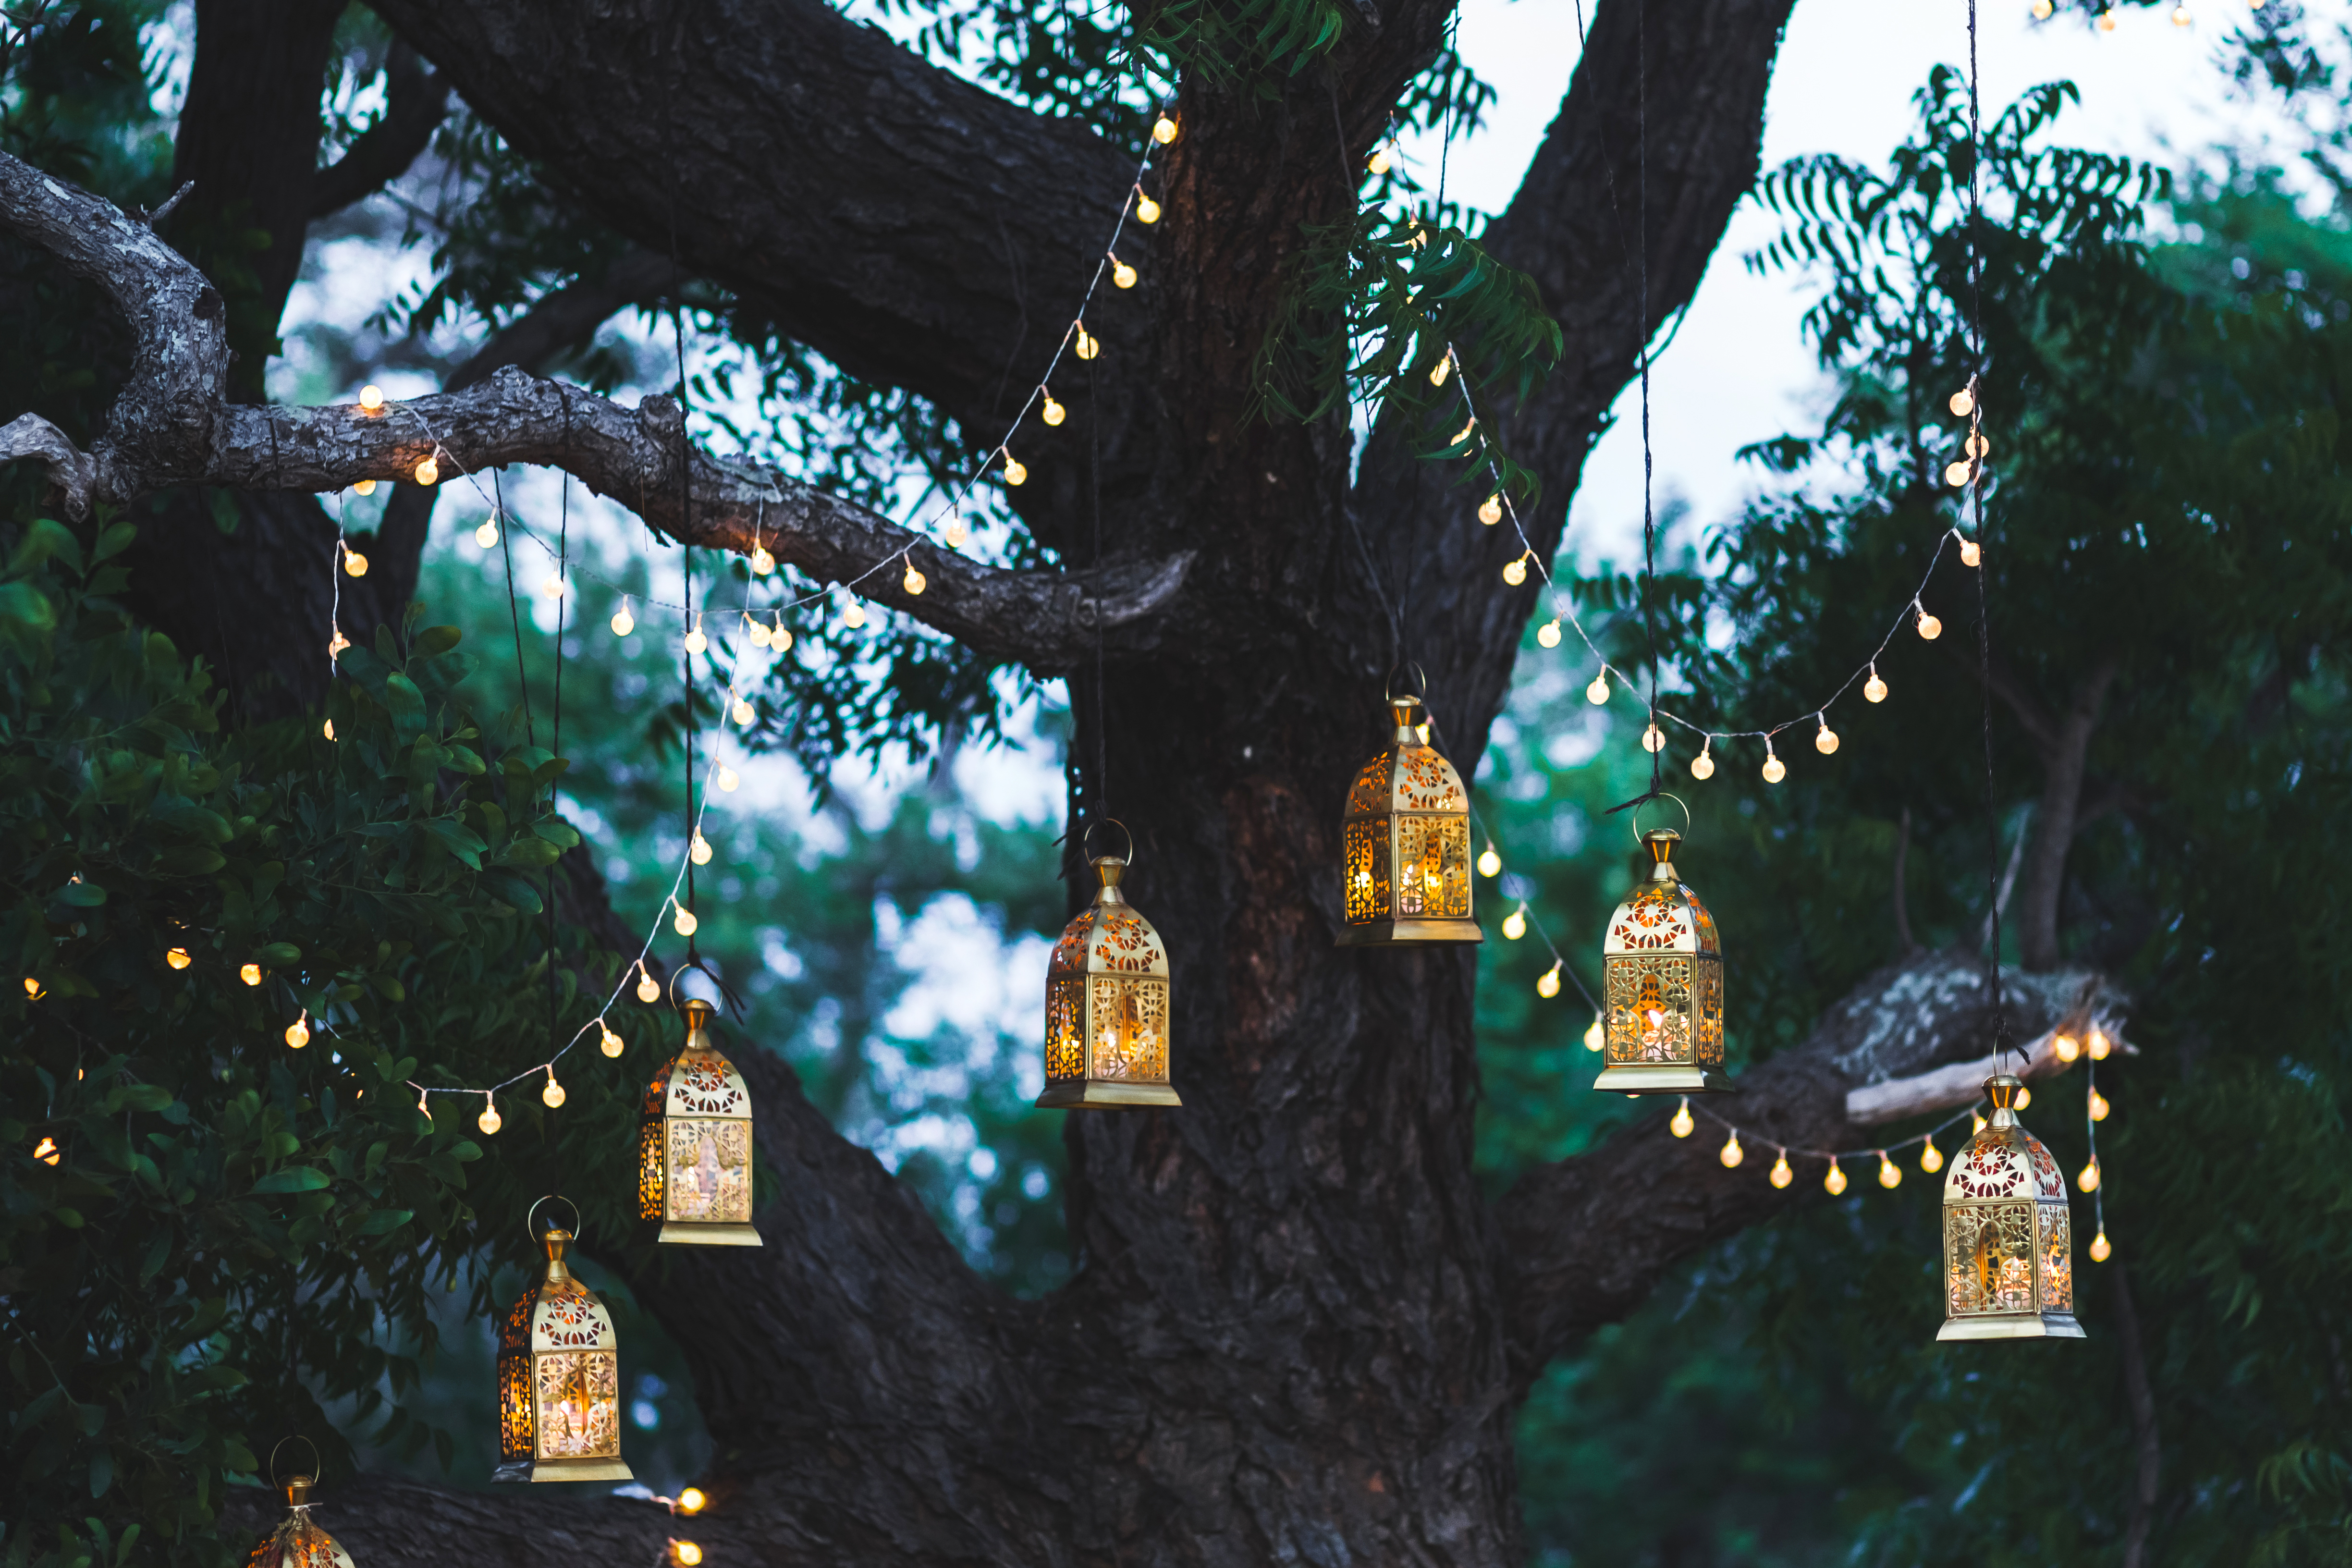 light-up-your-garden-haultail-diy